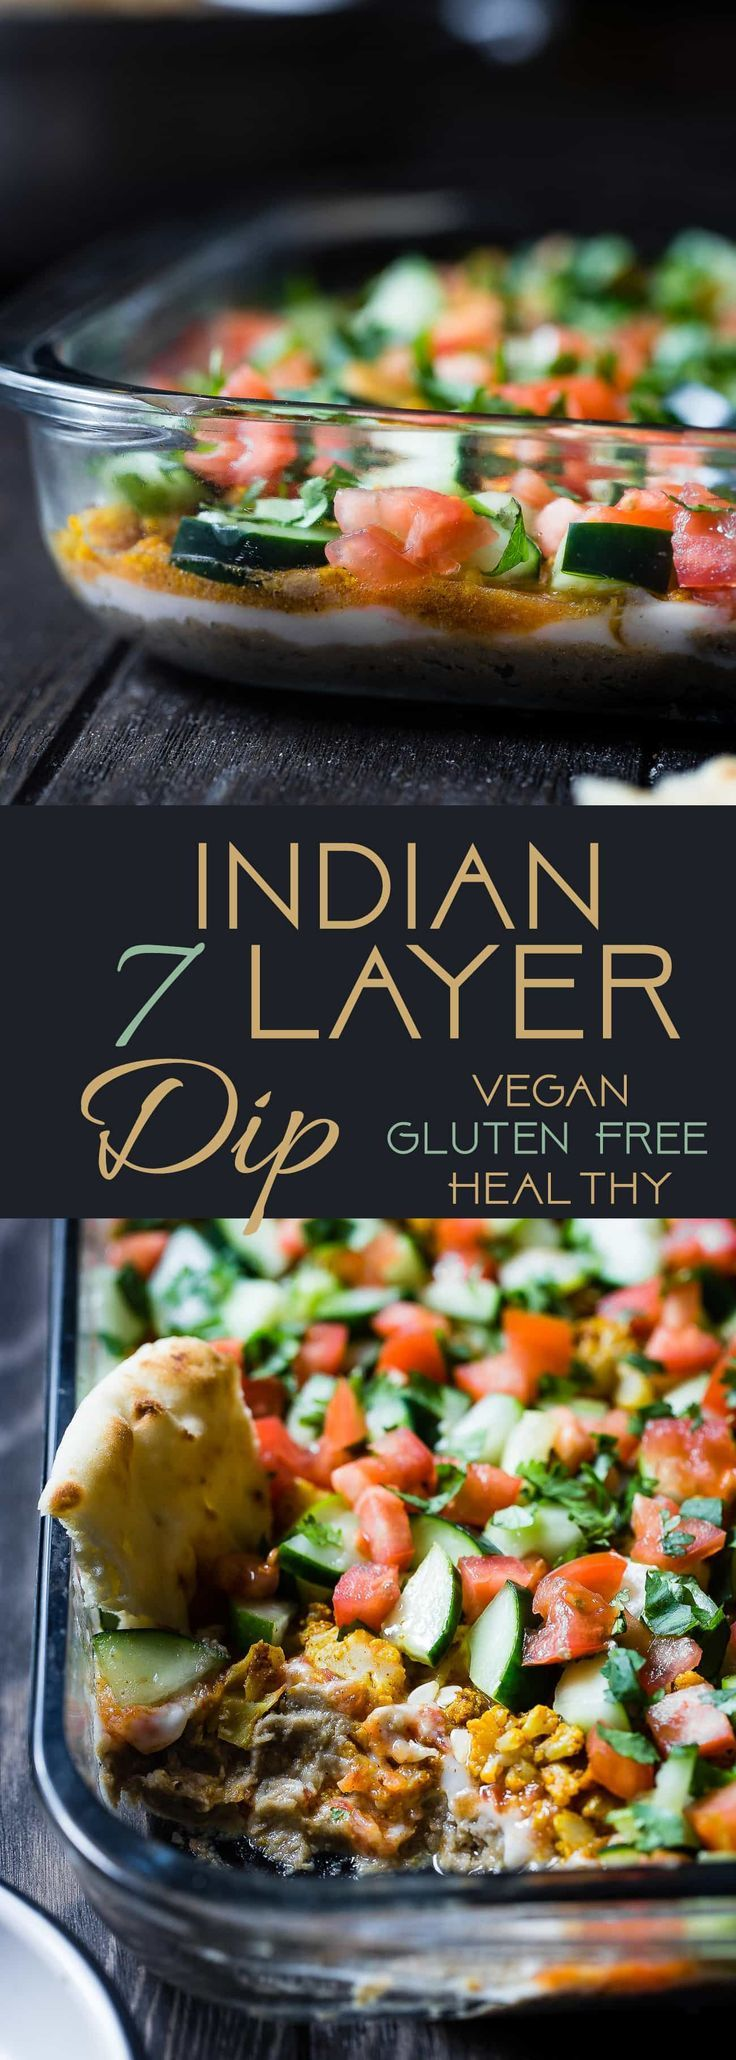 Healthy Indian 7 Layer Dip - The classic 7 layer dip recipe gets a healthy, Indian makeover! This dip is loaded with spicy, ethnic flavors and is gluten free and vegan friendly too! It's only 170 calories and perfect for game day! | Foodfaithfitness.com | @FoodFaithFit